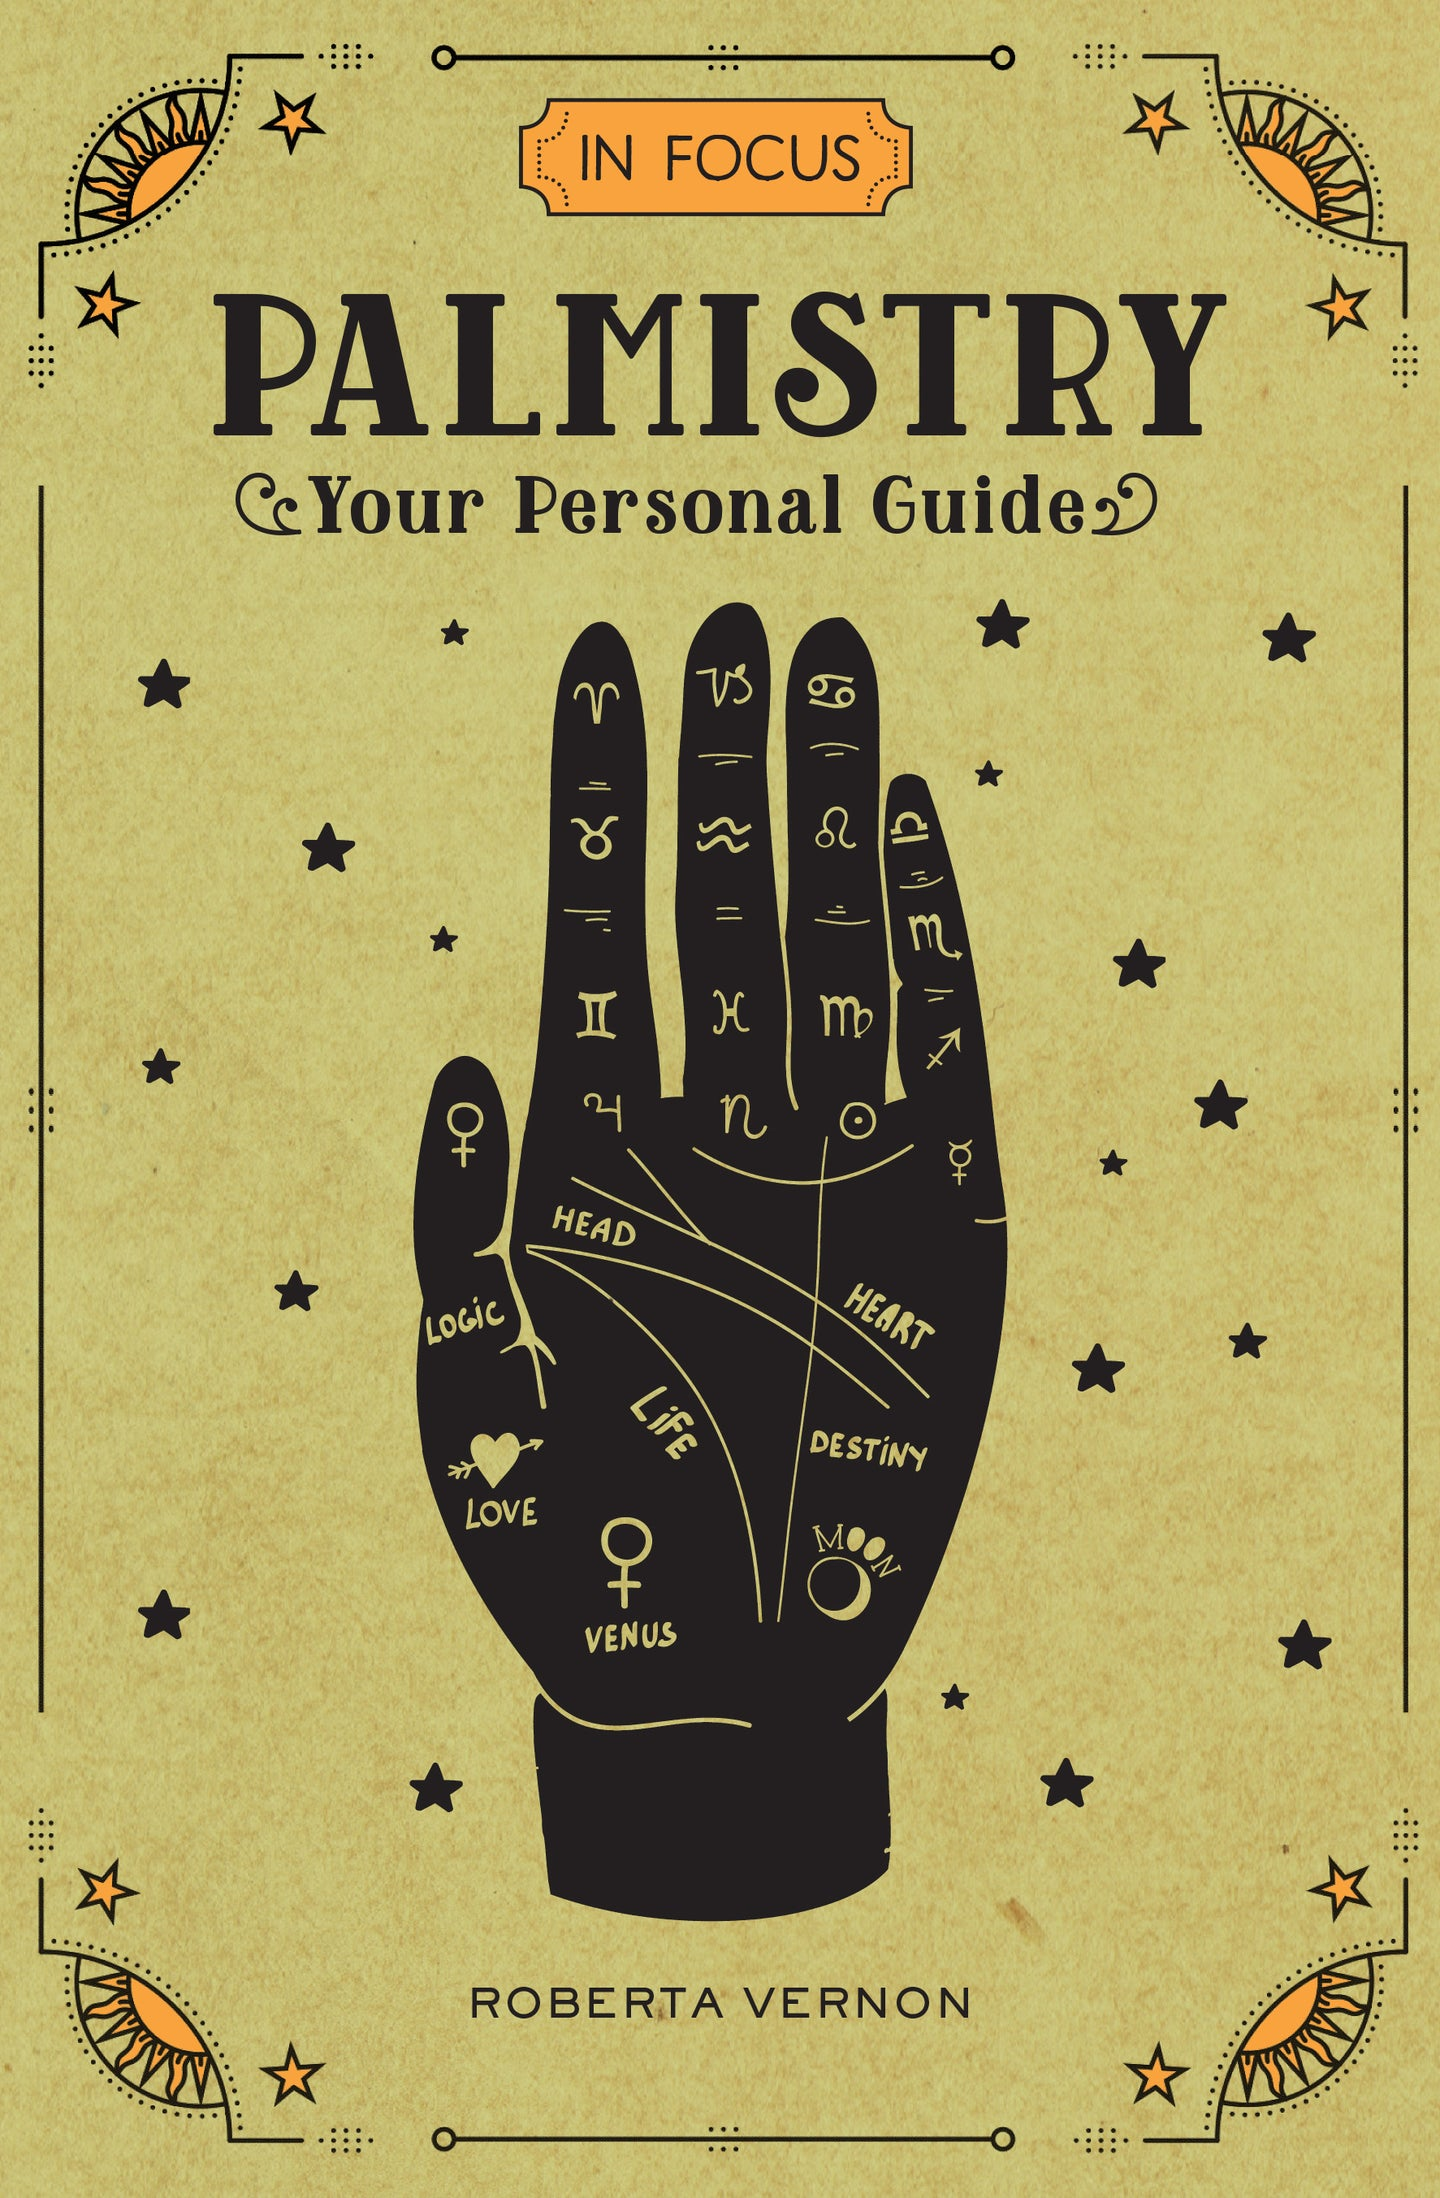 Palmistry Your Personal Guide | Roberta Vernon | Book | Ajna Jewels & Gems | Crystal Shop | Brisbane | Australia